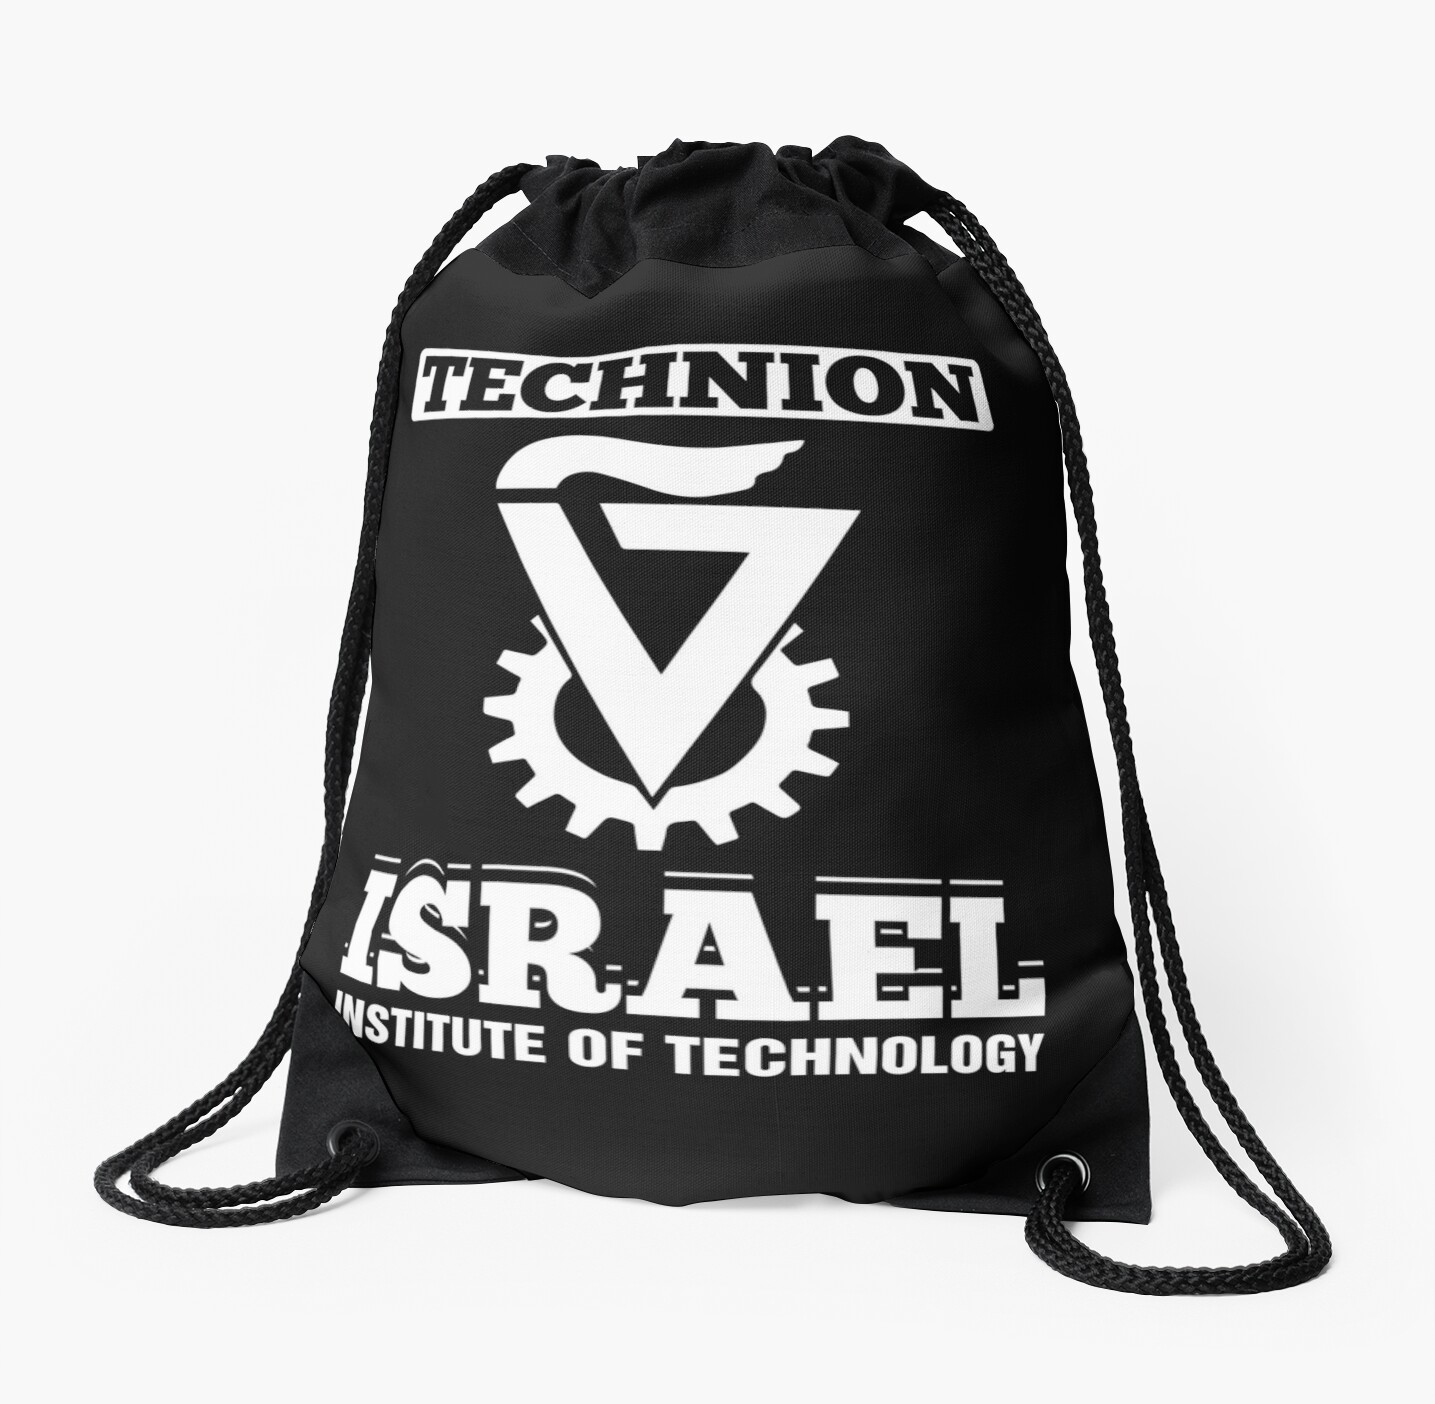 Technion Israel Institute Of Technology Gift by Reutmor